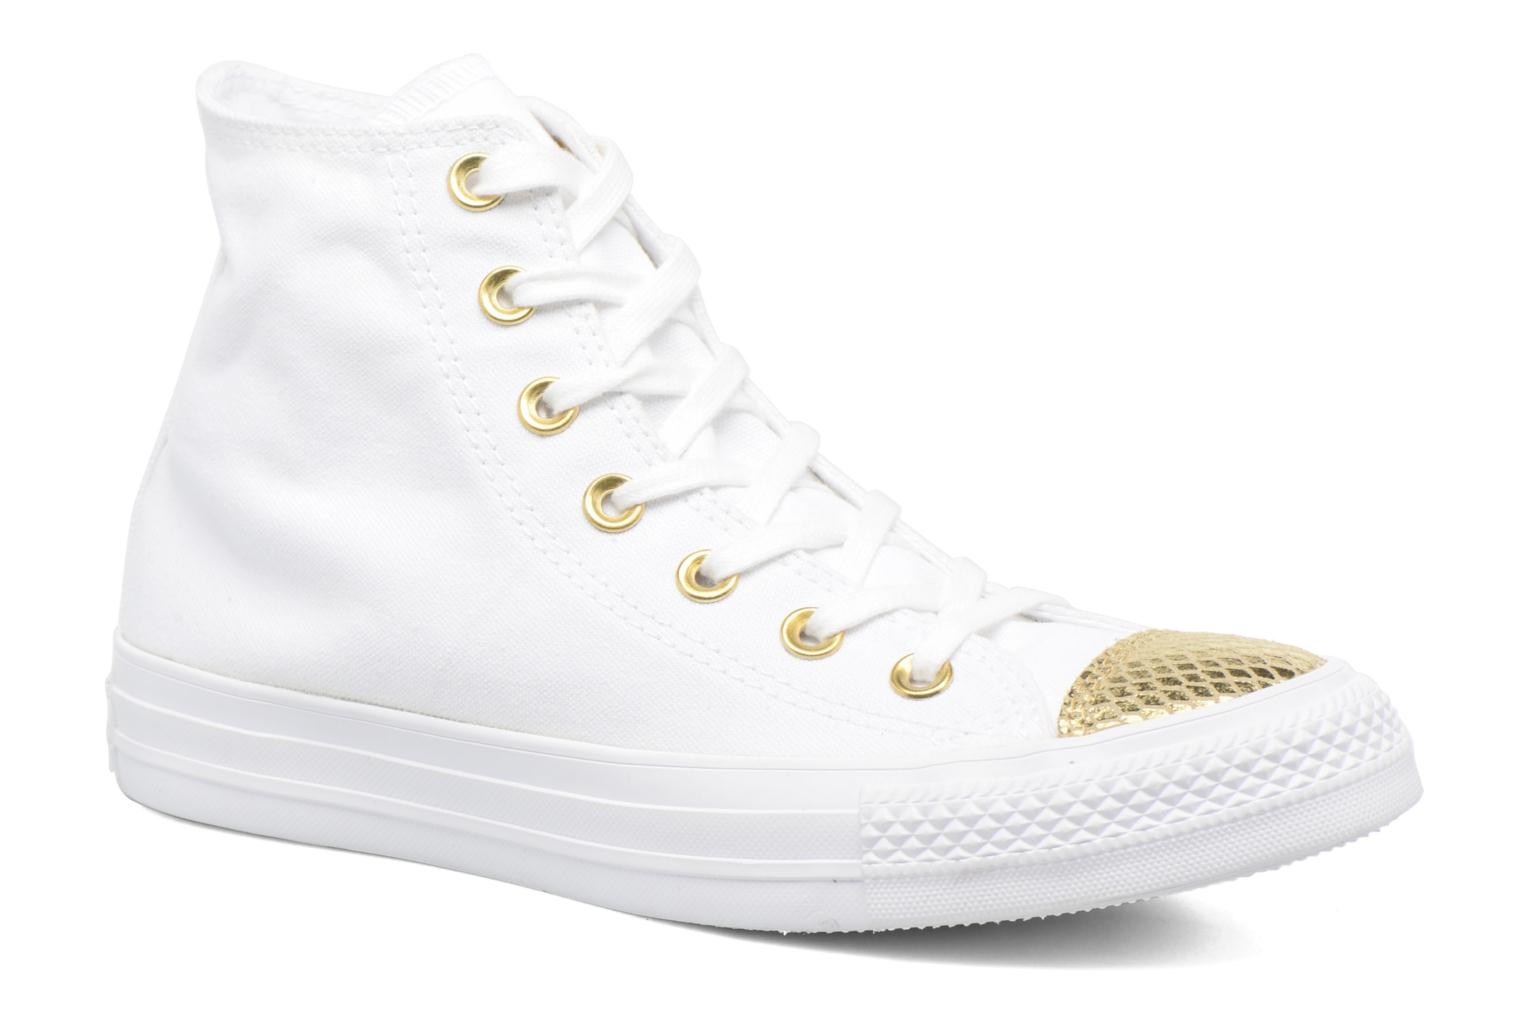 Chuck Taylor All Star Hi Metallic Toecap White/Gold/White